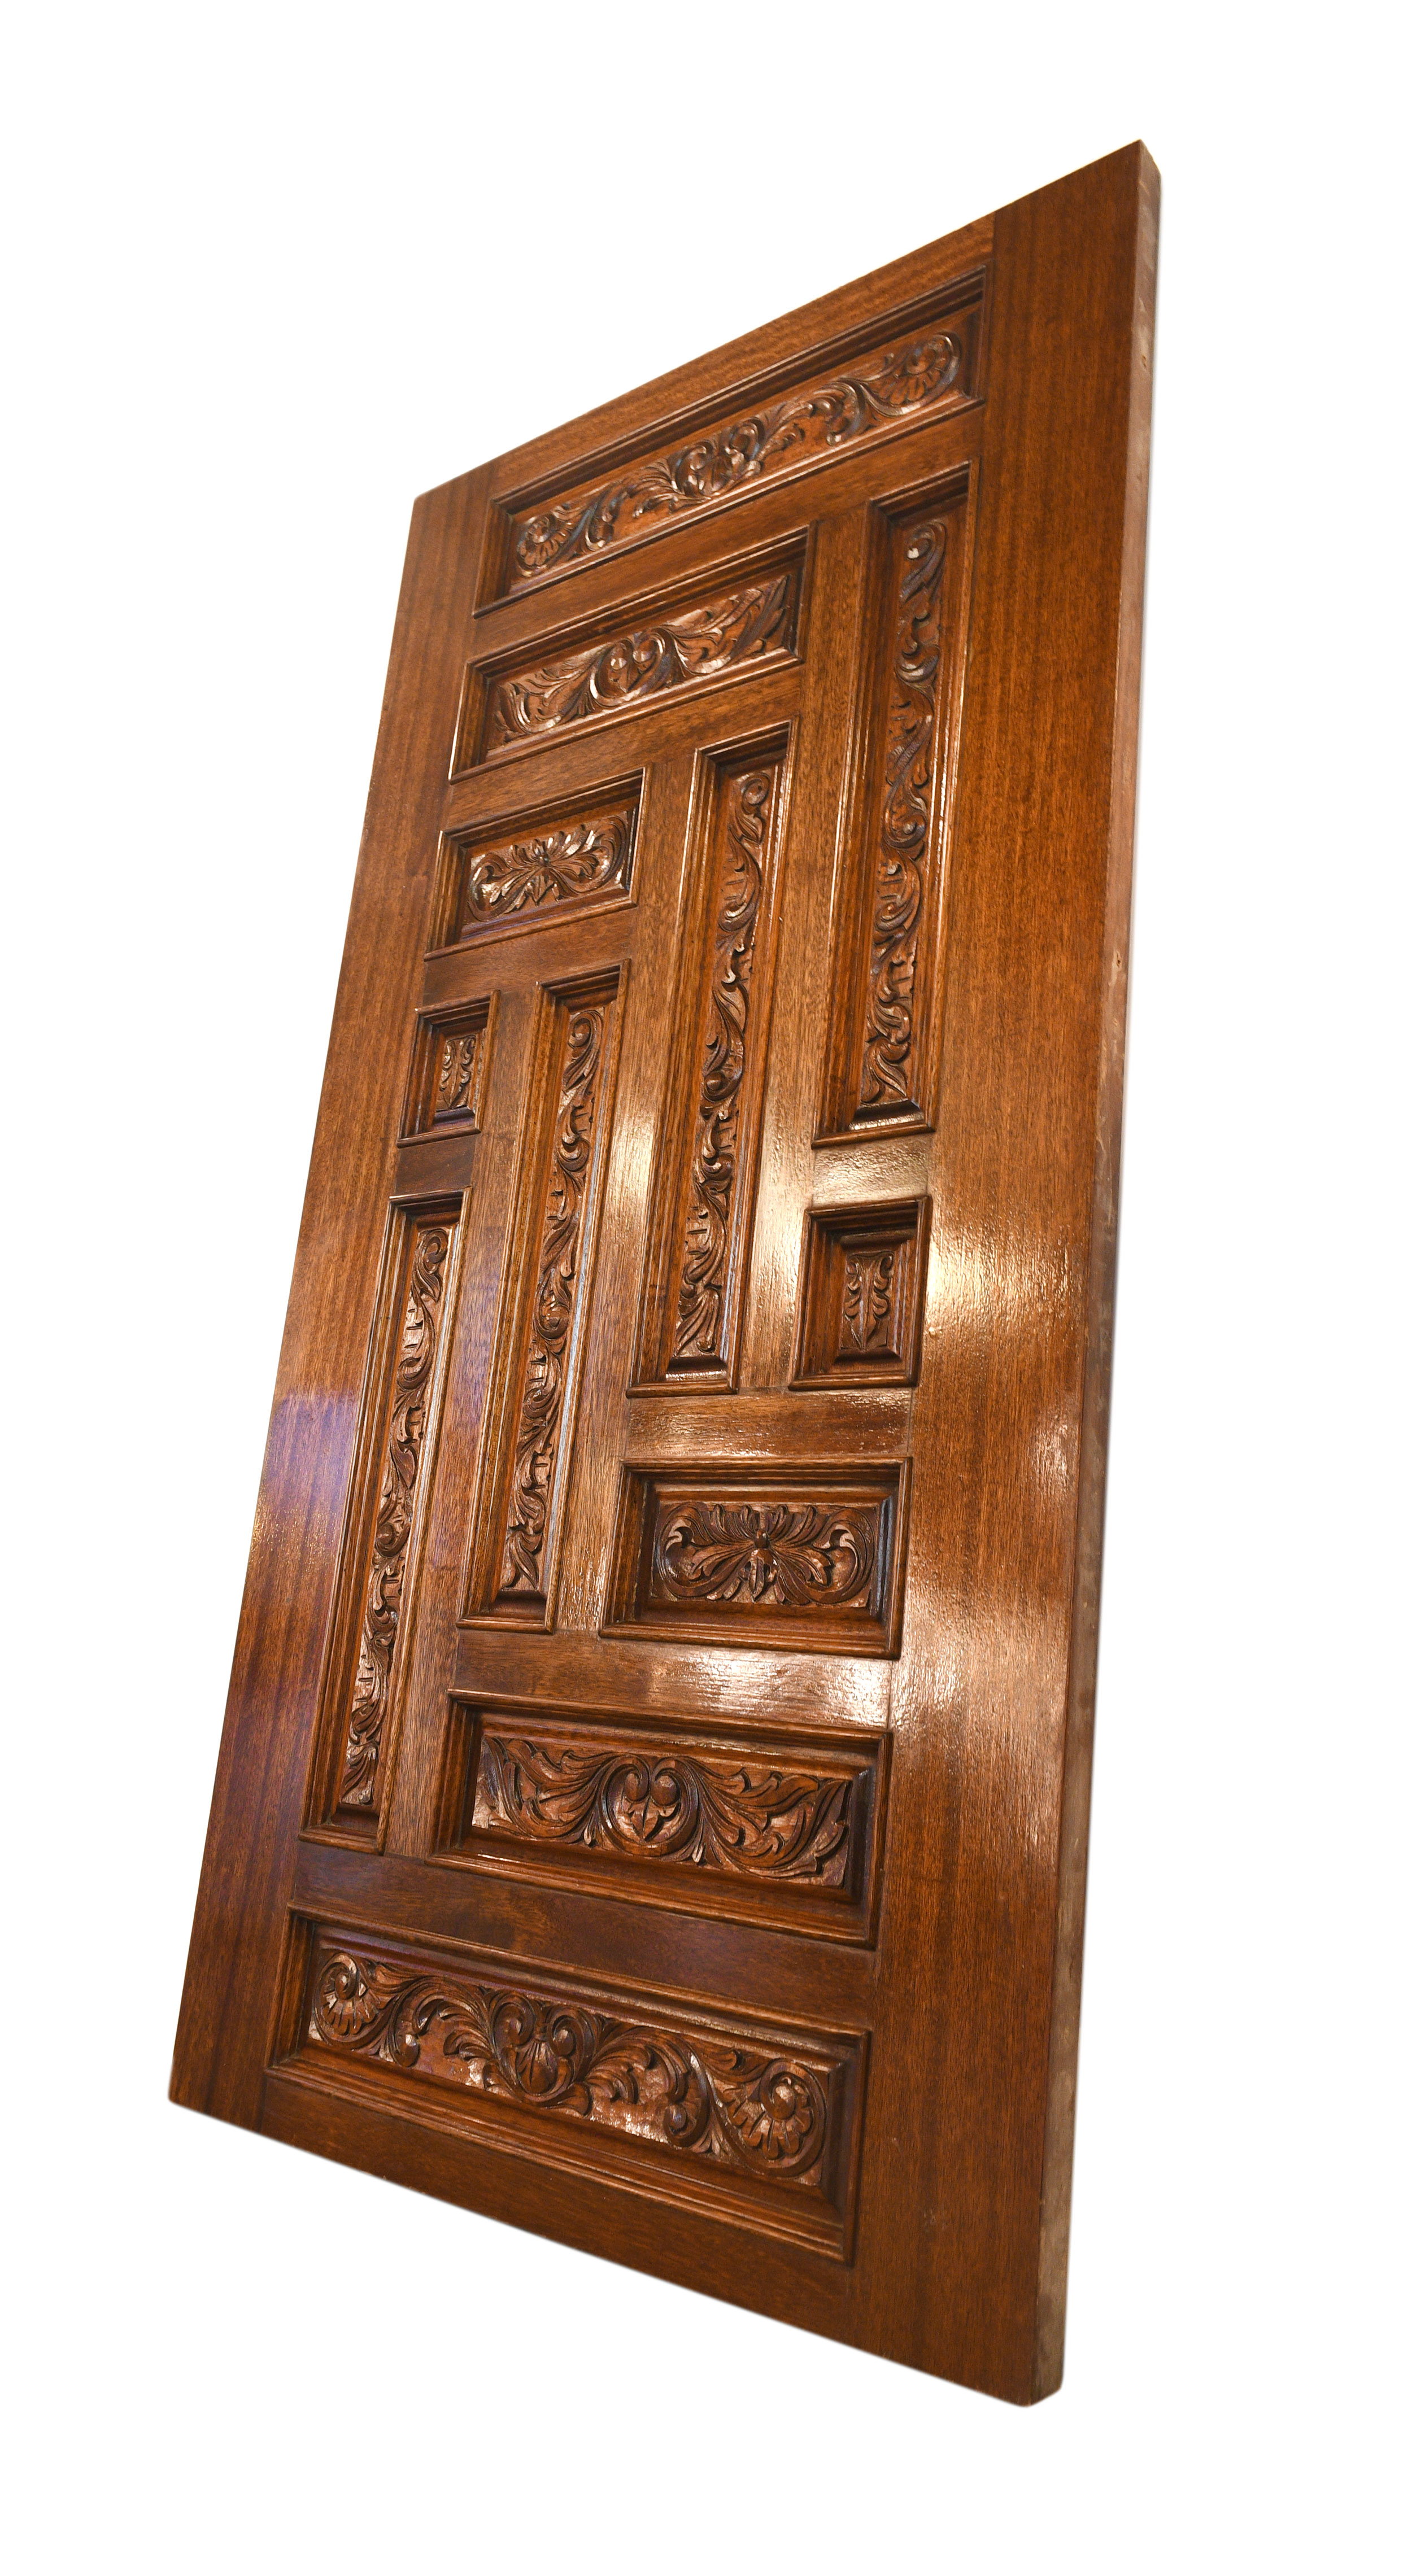 carved-wood-panel-2.jpg